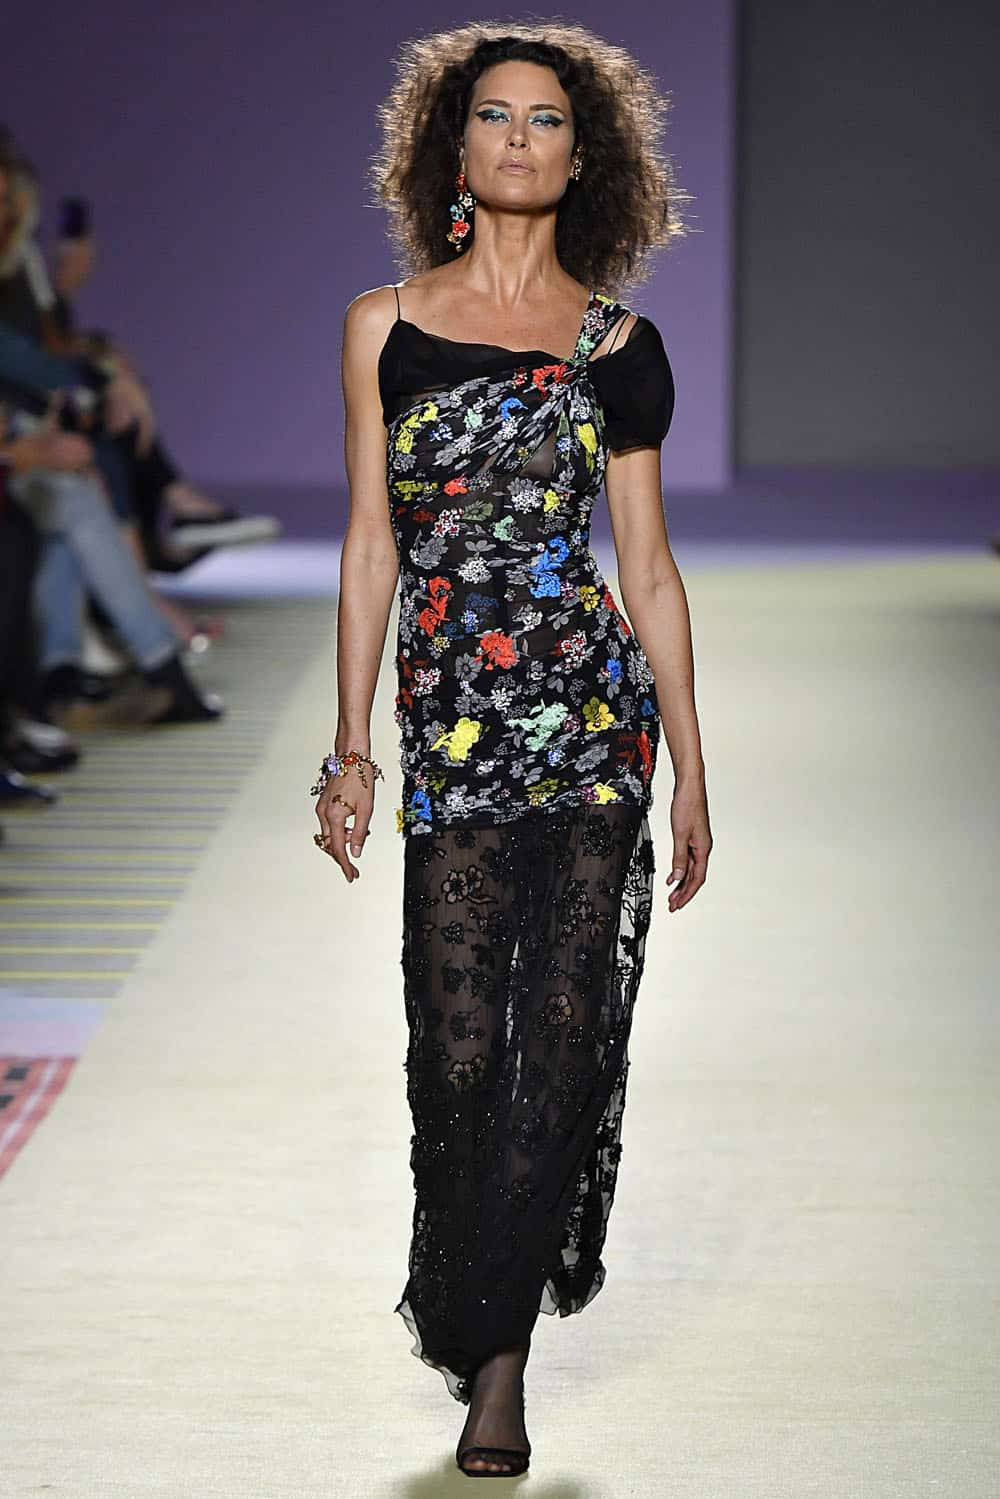 Shalom Harlow 90s Icon Just Closed The Versace Show